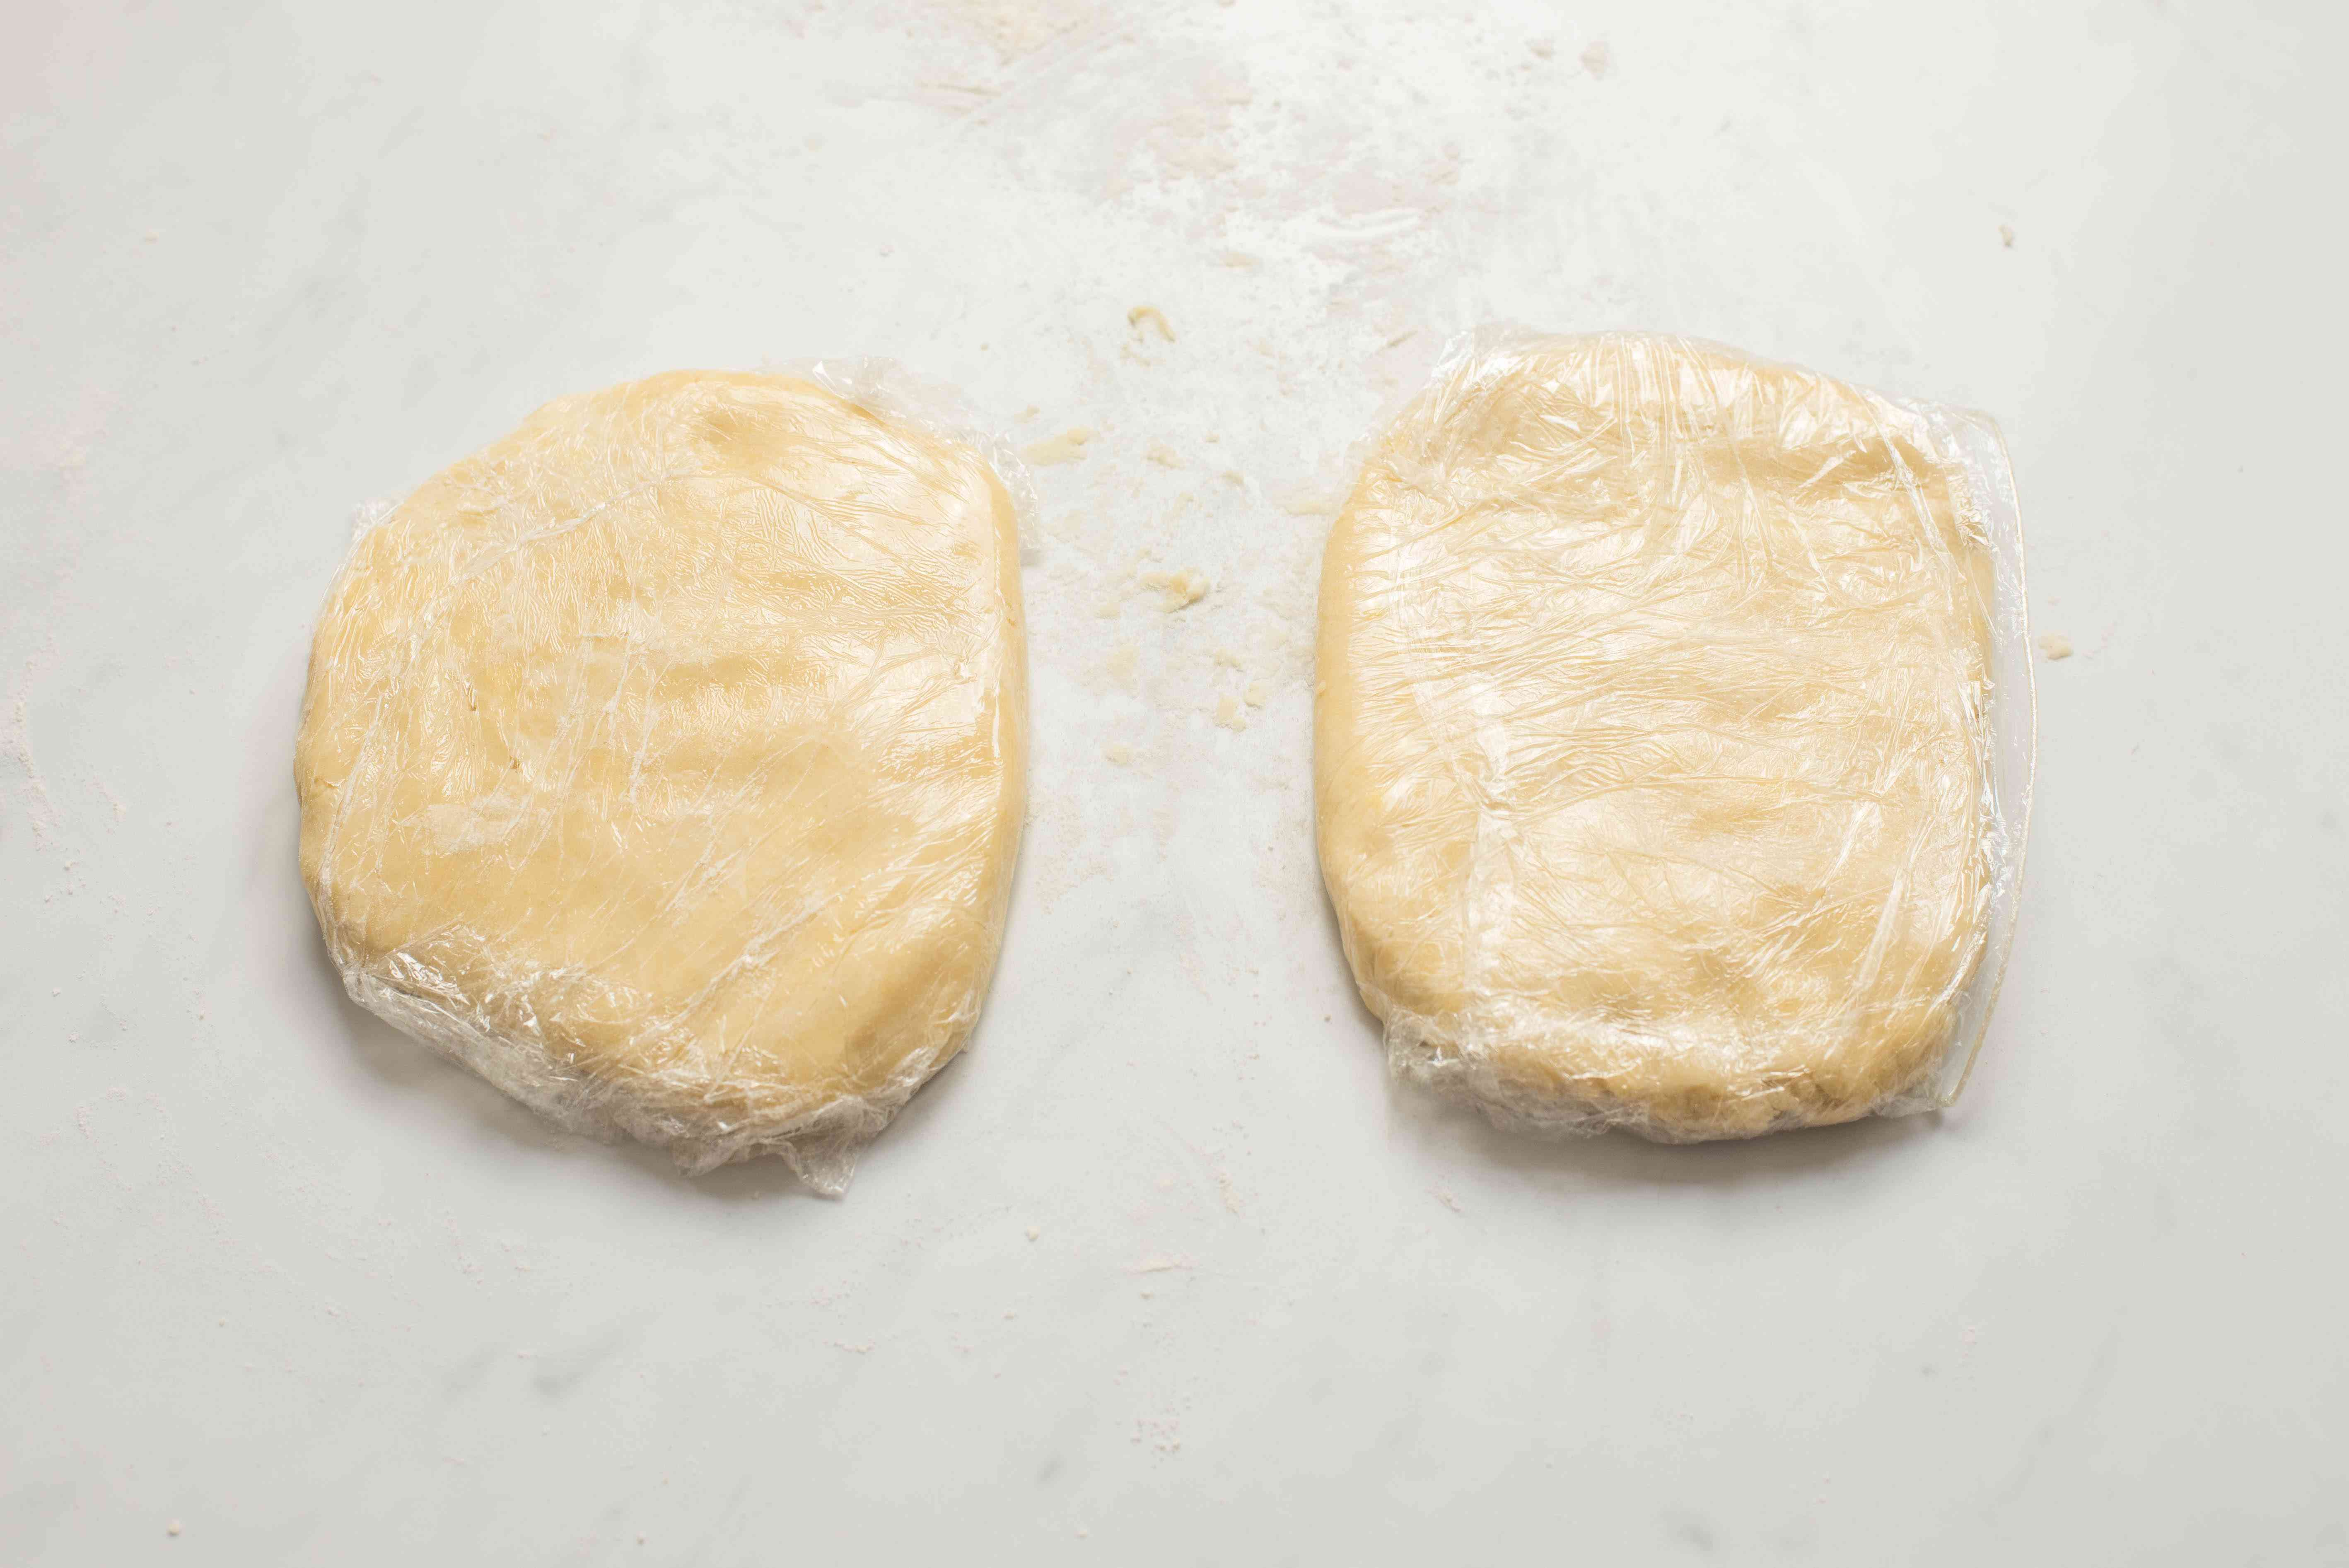 Repeat with dough